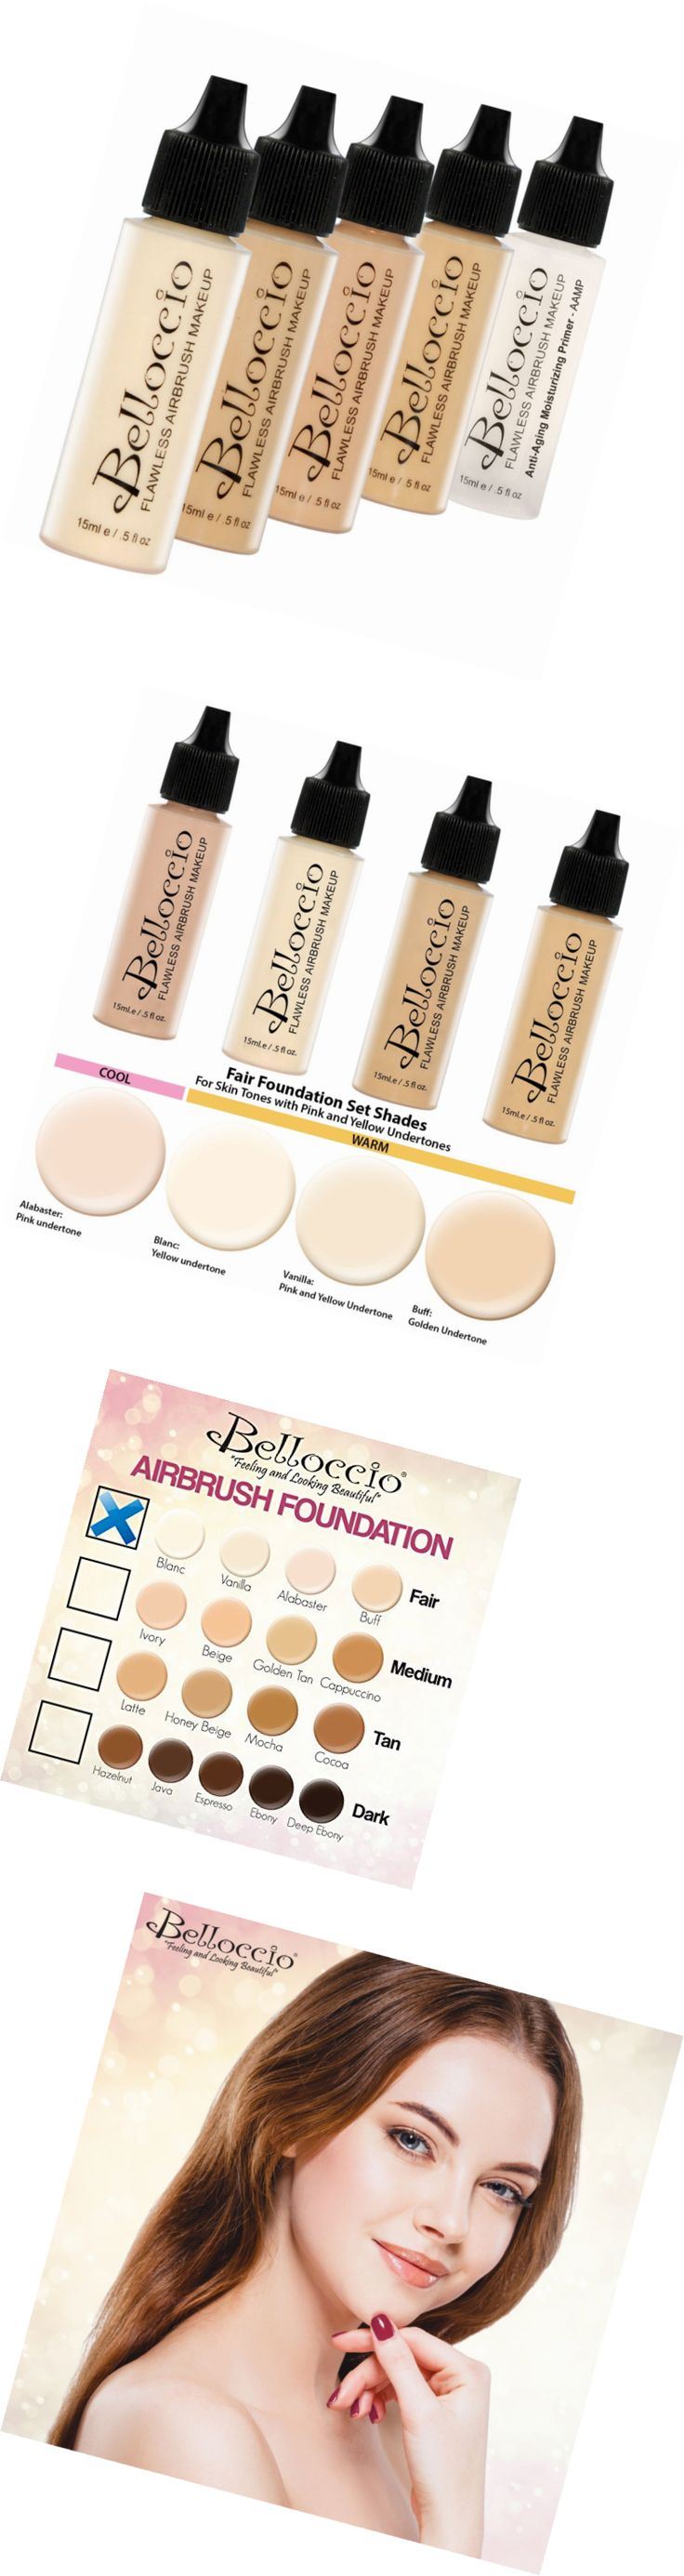 Beauty Makeup: Belloccio Fair Color Shades Airbrush Makeup Foundation Set -> BUY IT NOW ONLY: $36.75 on eBay!